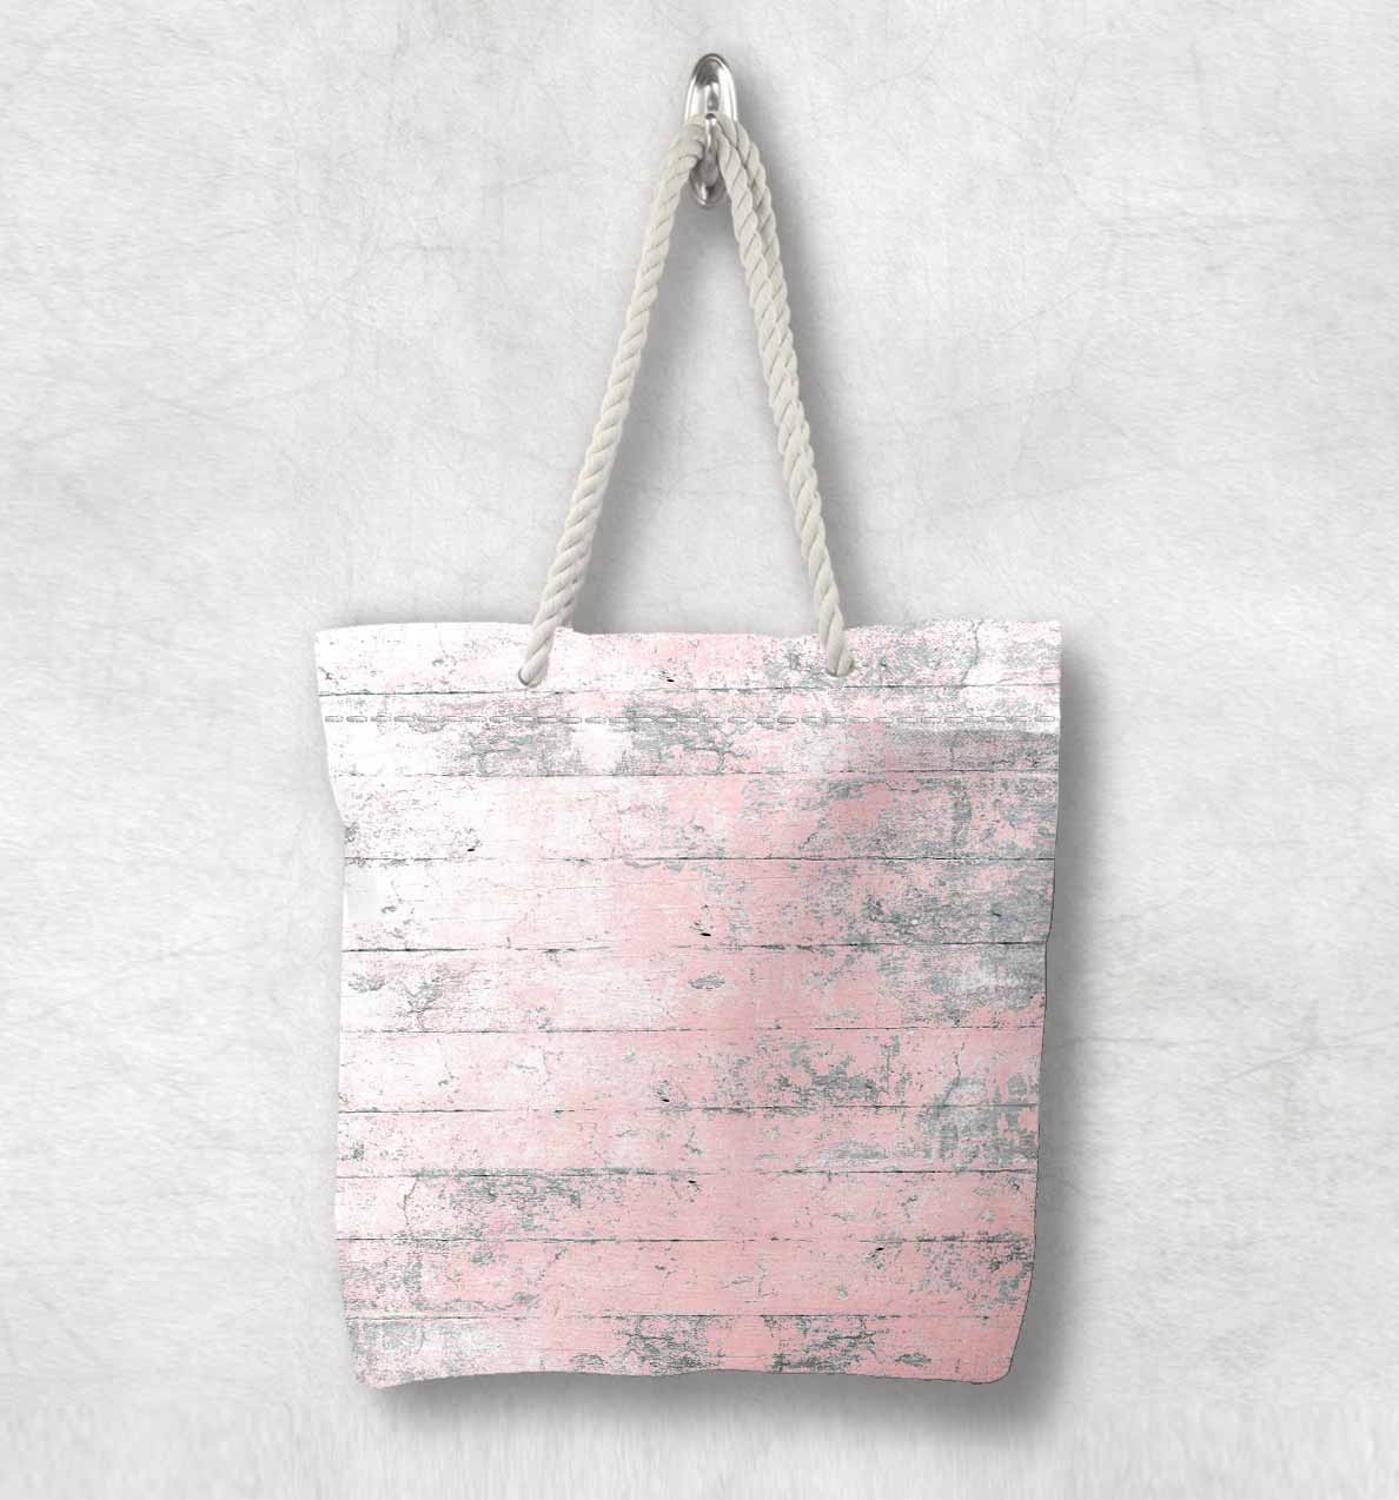 Else Pink Gray Vintage Wood Aging New Fashion White Rope Handle Canvas Bag Cotton Canvas Zippered Tote Bag Shoulder Bag